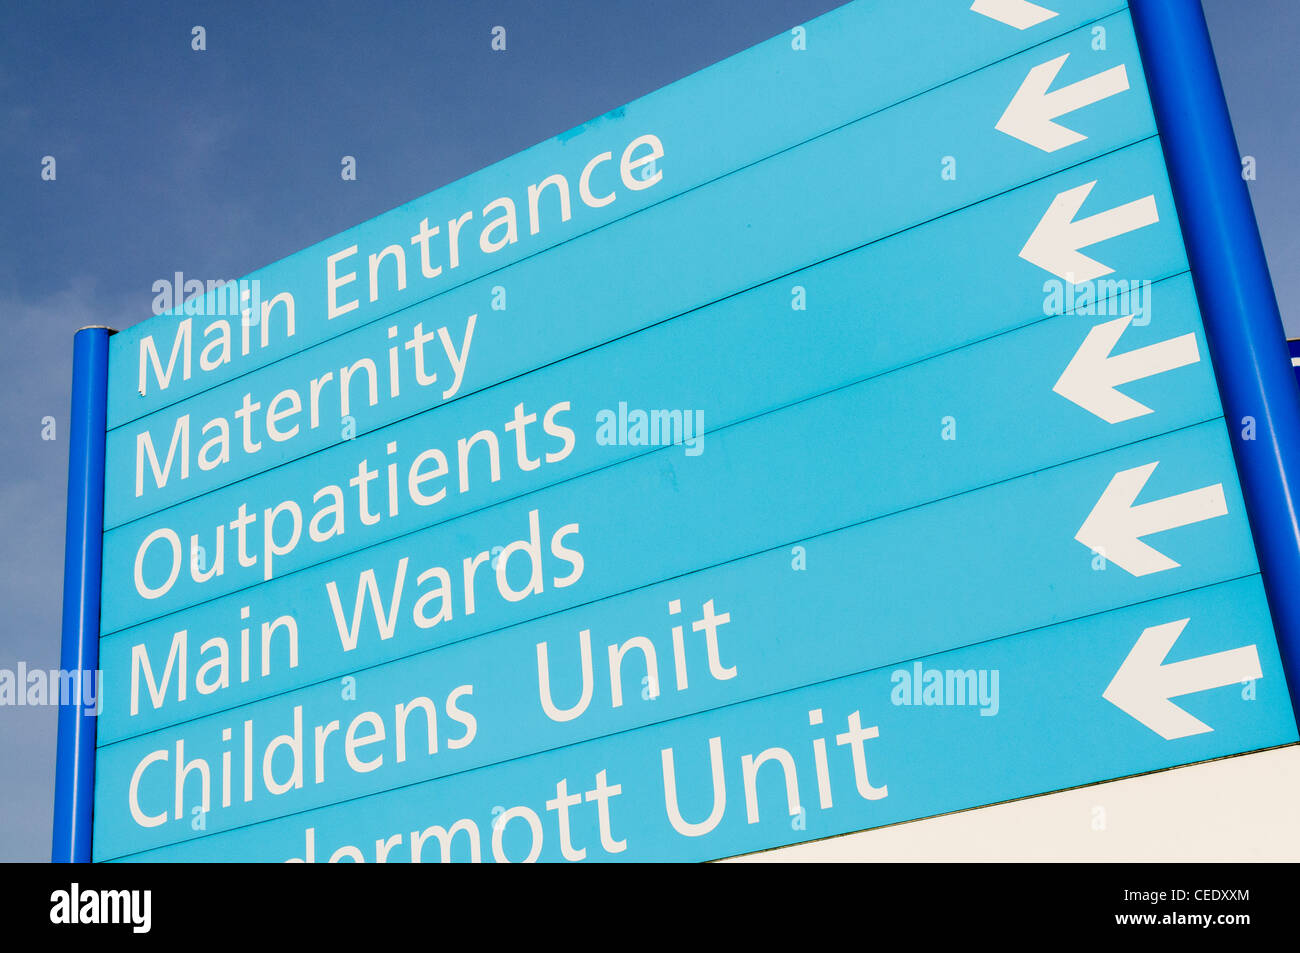 Hospital sign for Maternity, Outpatients, wards and children's unit - Stock Image